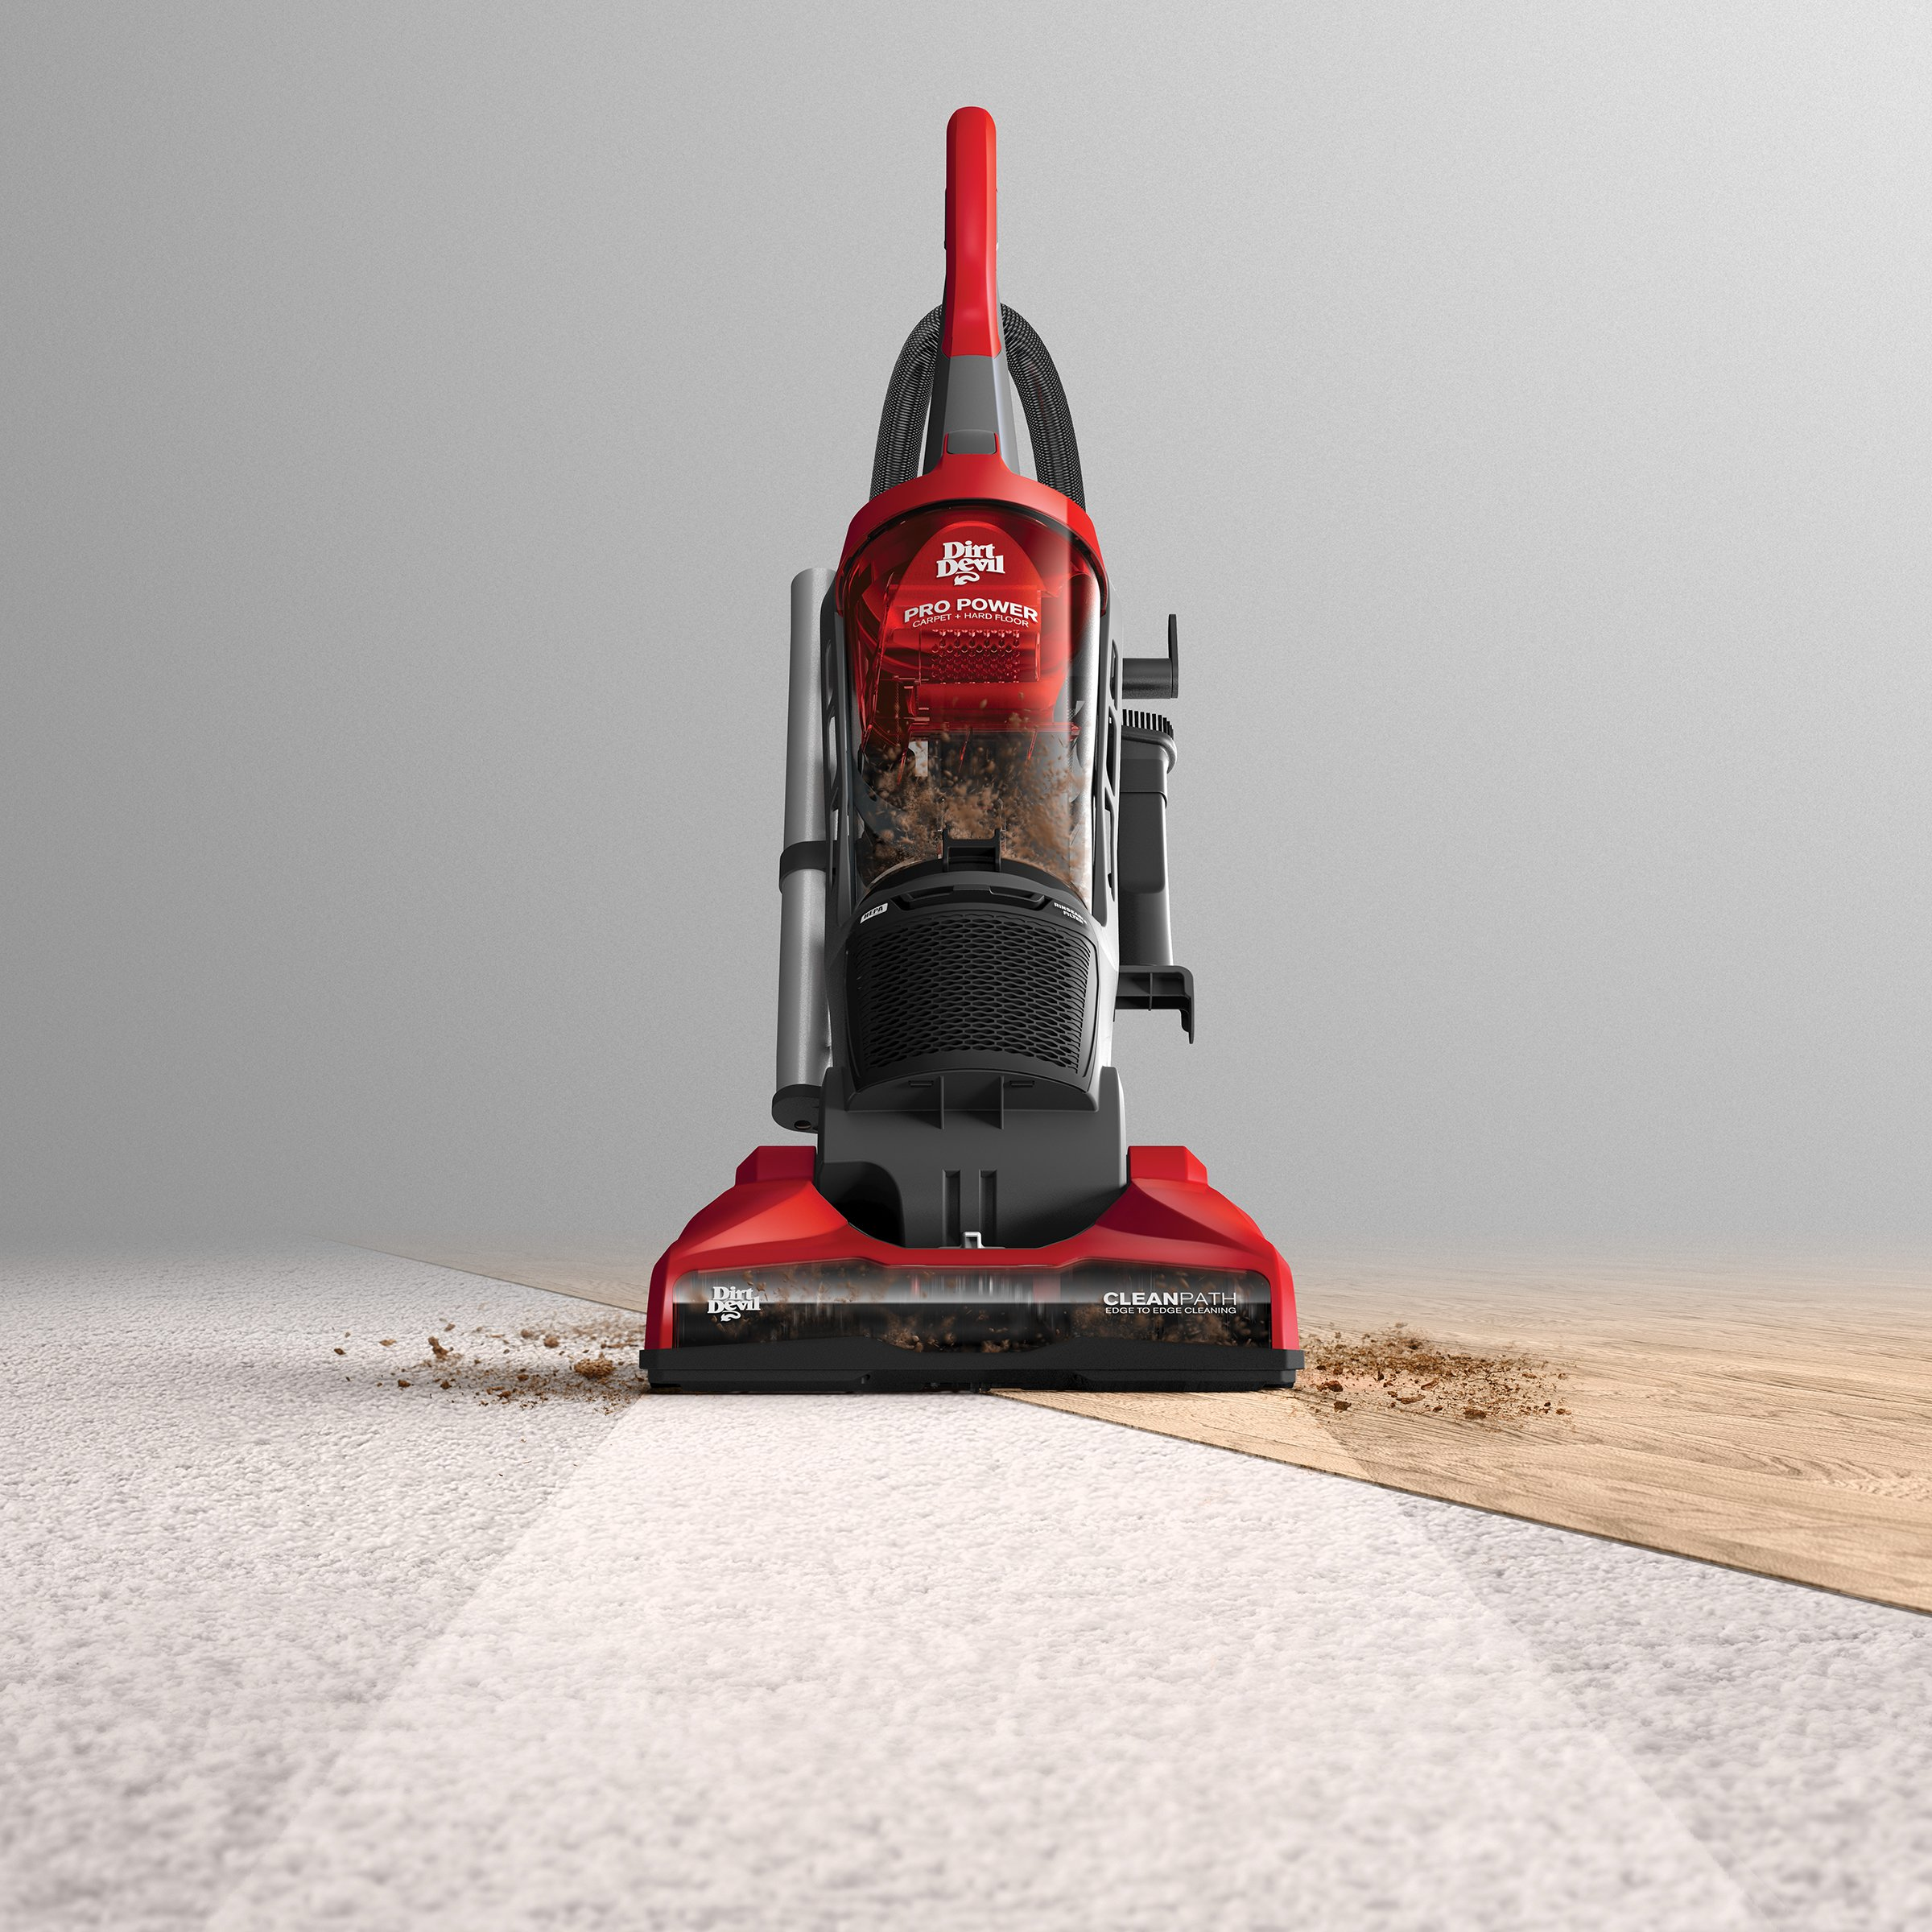 Dirt Devil Vacuum Cleaner Pro Power Bagless Corded Upright Vacuum UD70172 by Dirt Devil (Image #3)